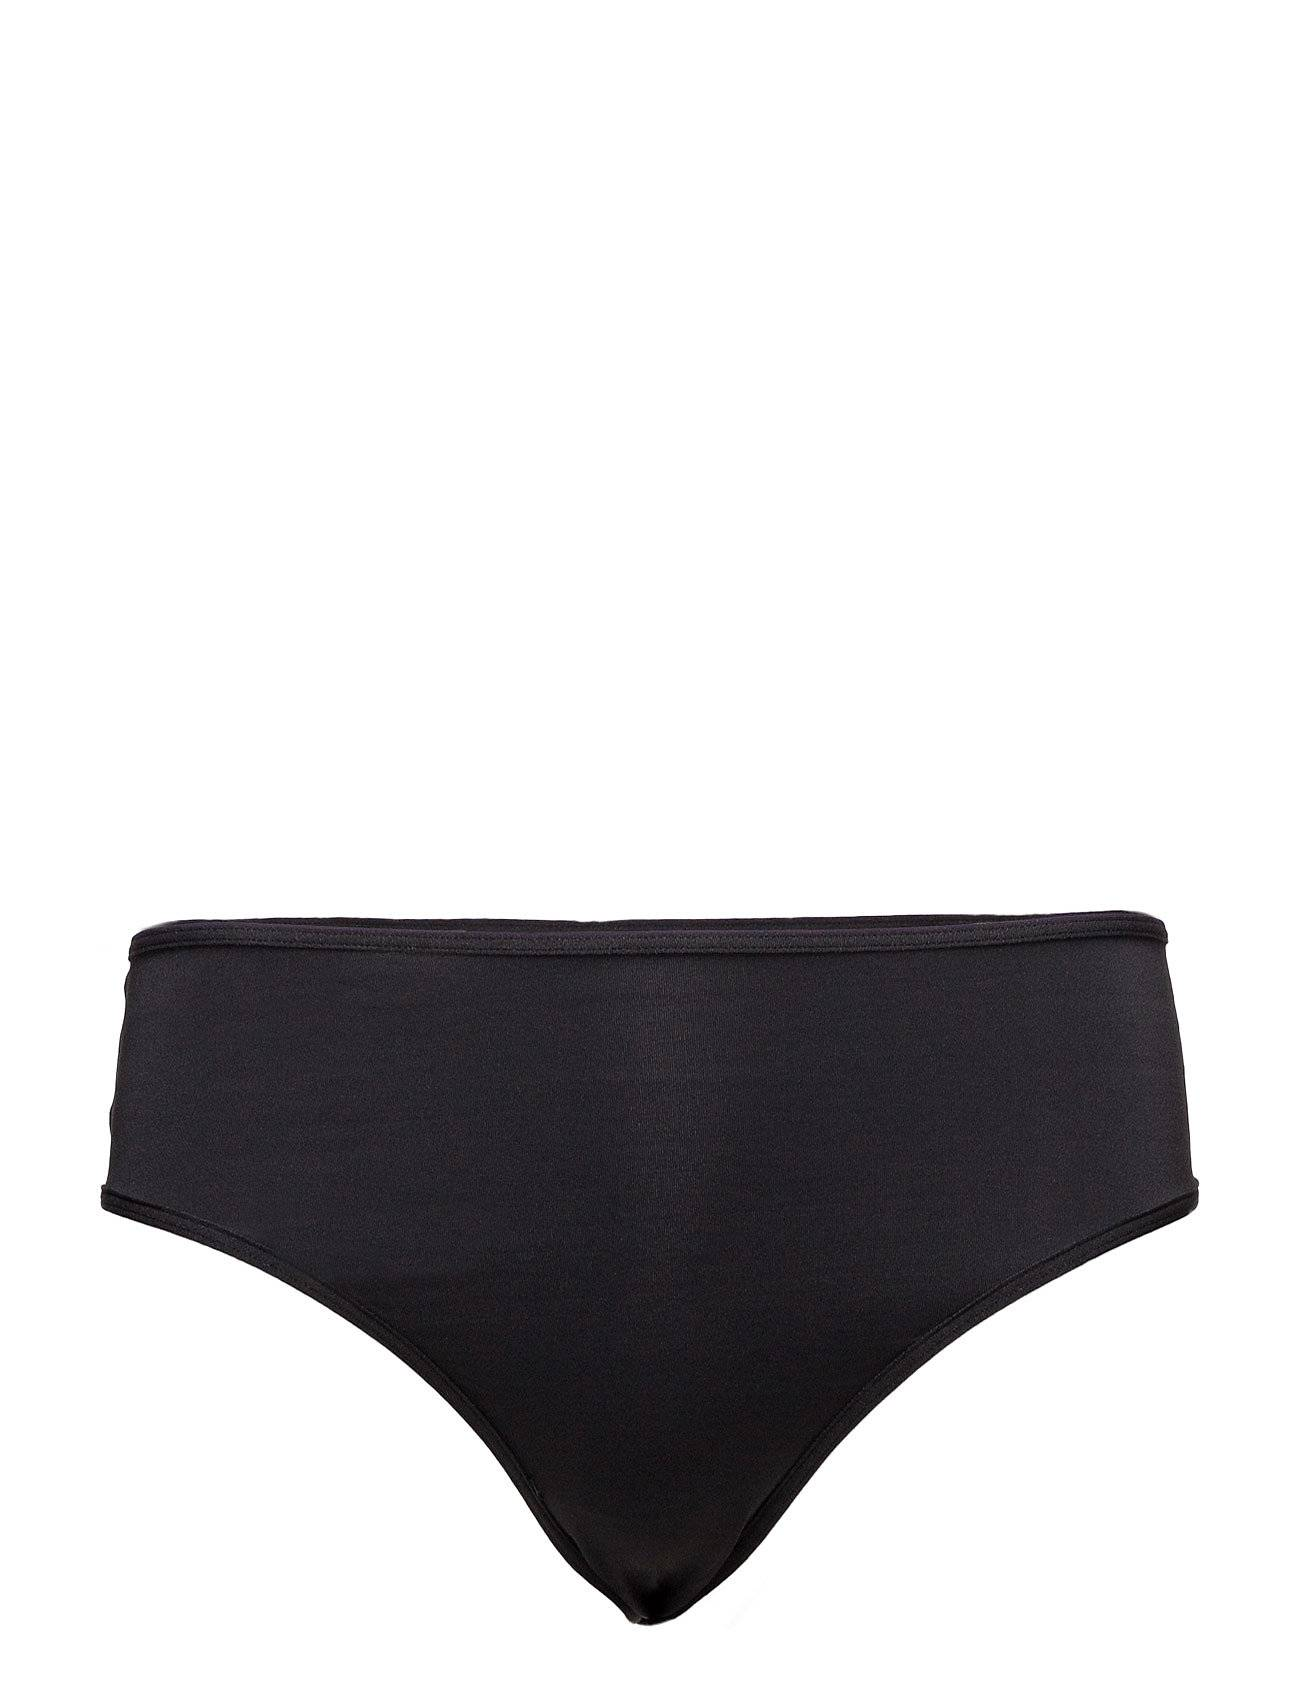 Marlies Dekkers Md D.De Paris Thong 7